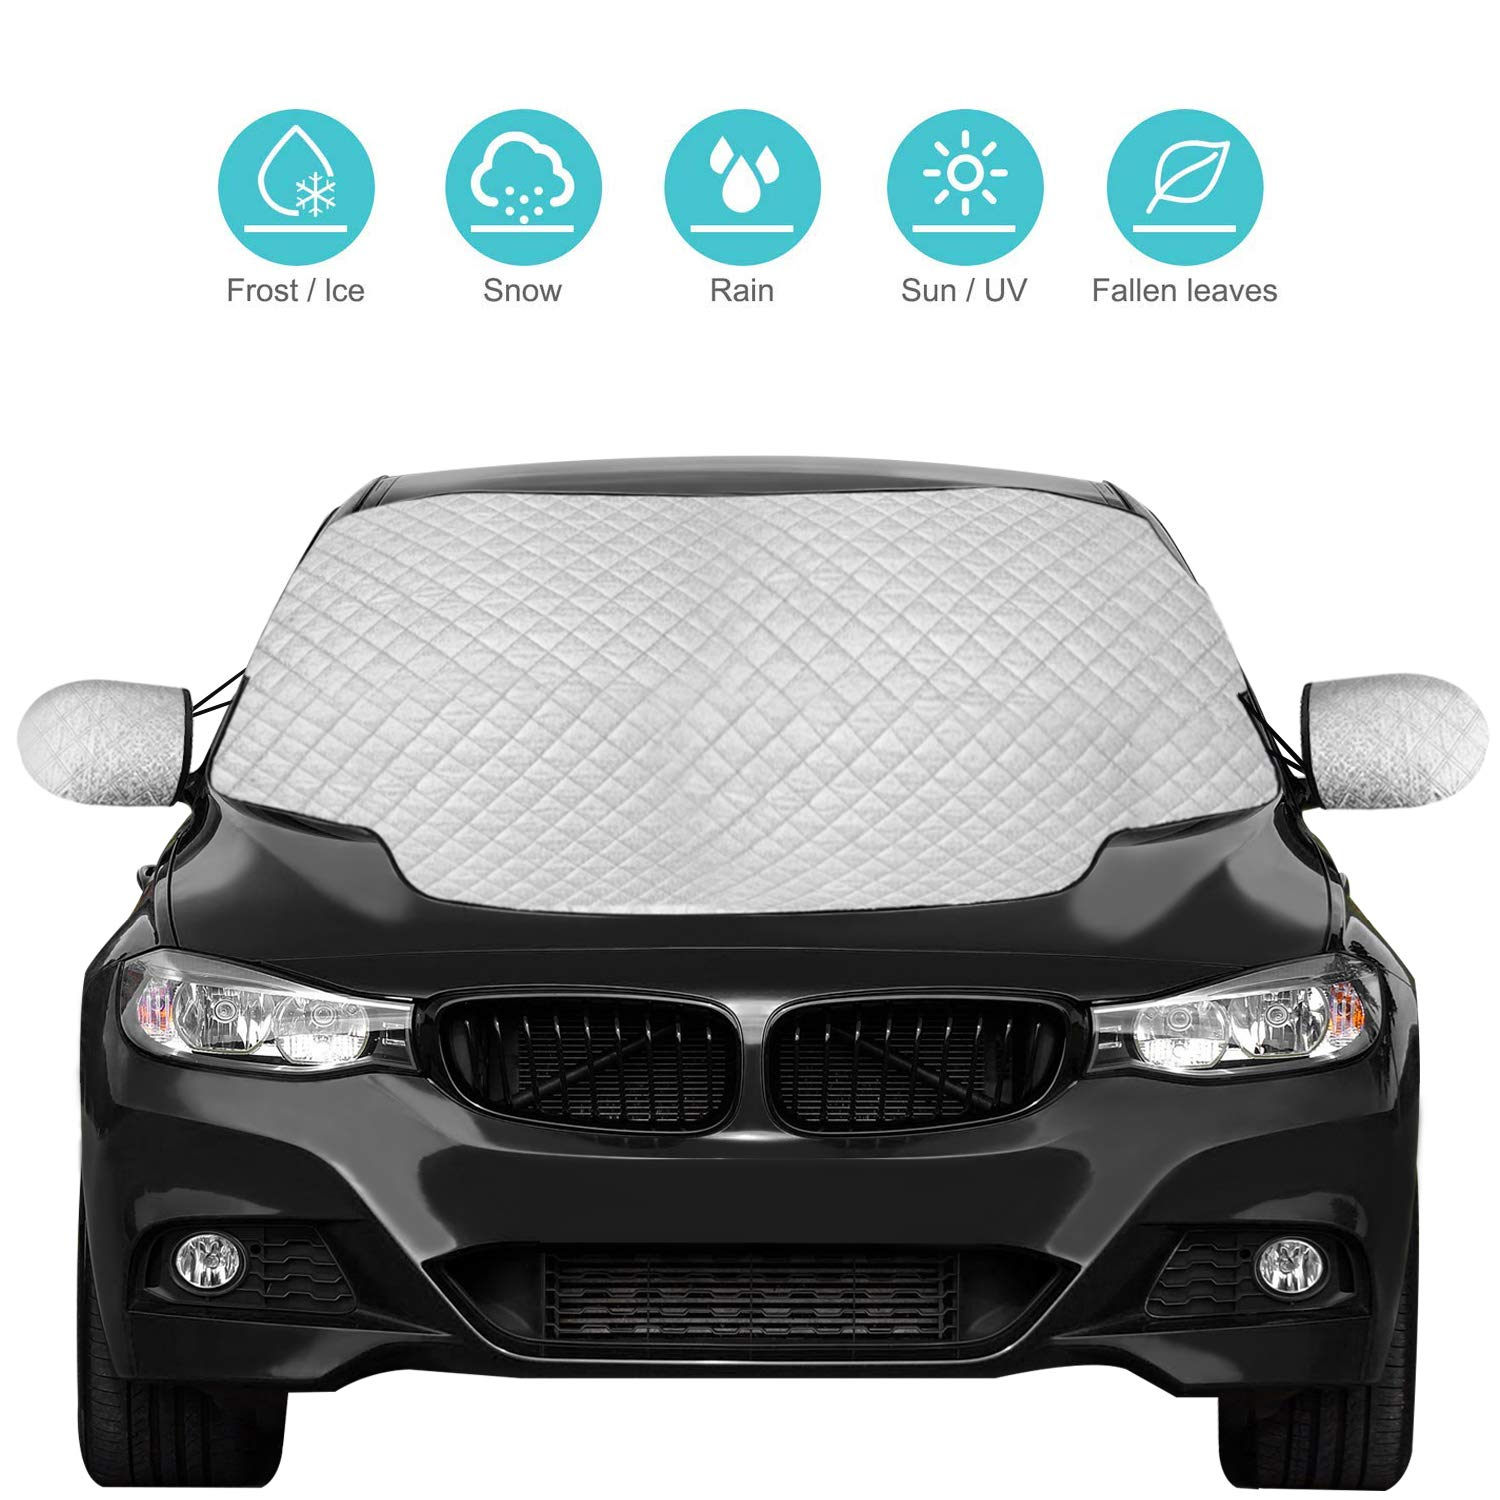 QcoQce Car Windscreen, Magnetic Snow Cover with Two Mirror Covers, Windshield Ice Cover Dust Sun Shade Protector in All Weather (147× 120cm) Windshield Ice Cover Dust Sun Shade Protector in All Weather (147×120cm)